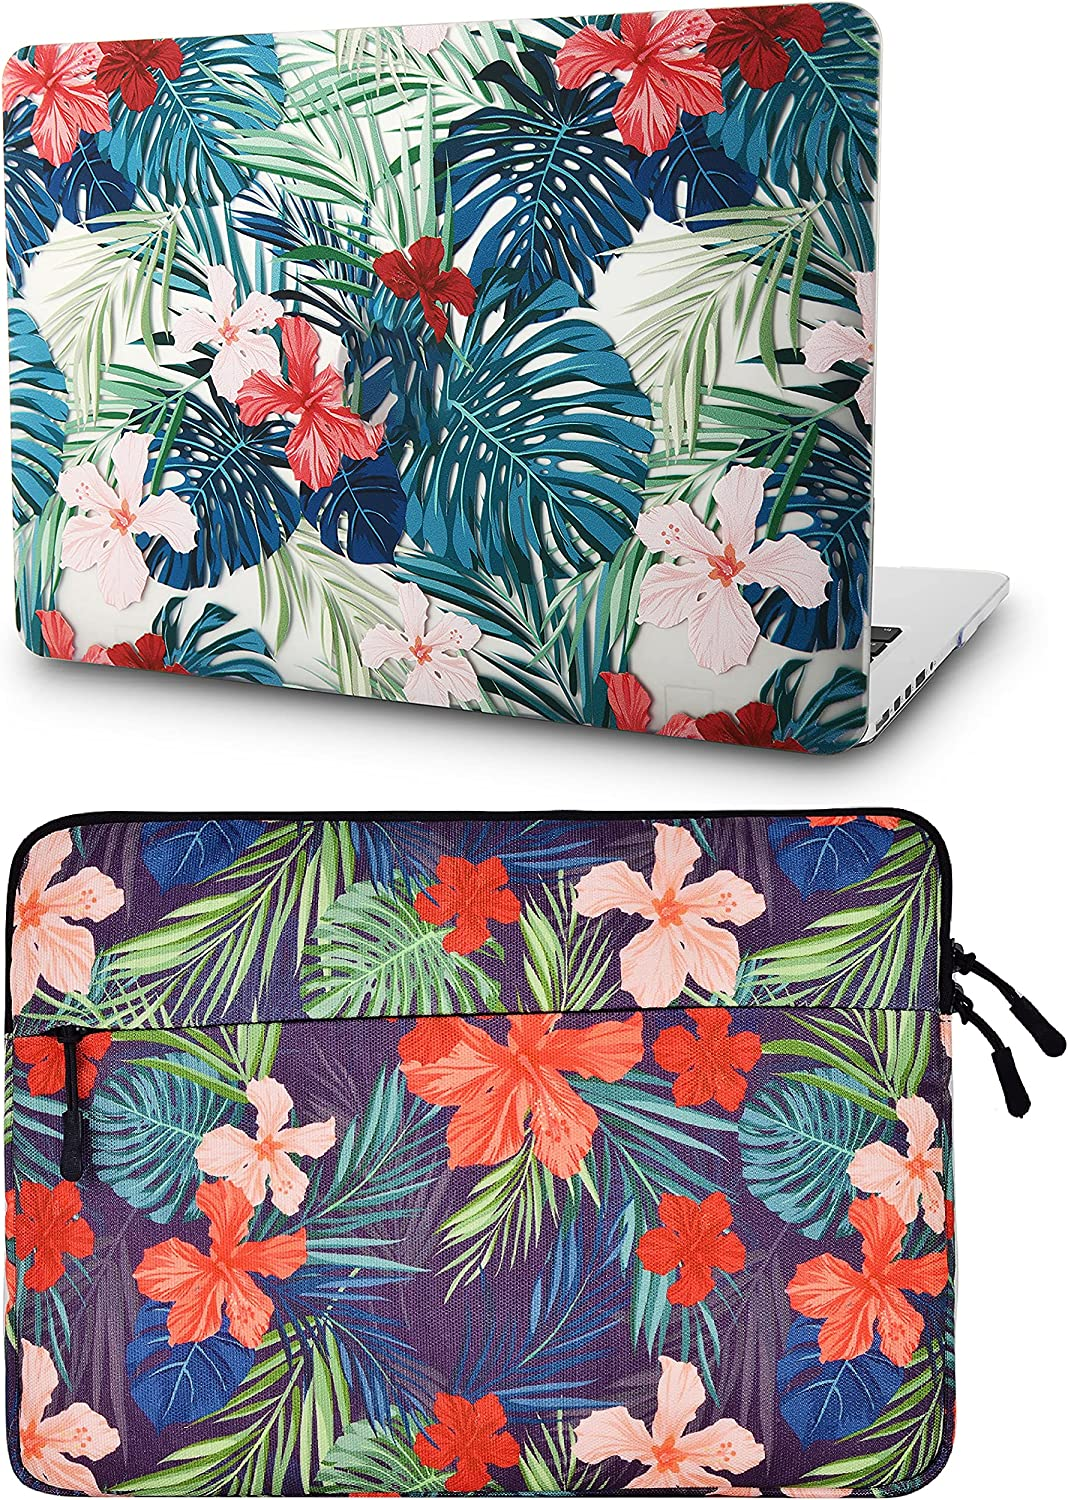 OFFicial KECC Laptop Case Compatible with Old -20 MacBook Pro Retina low-pricing 13